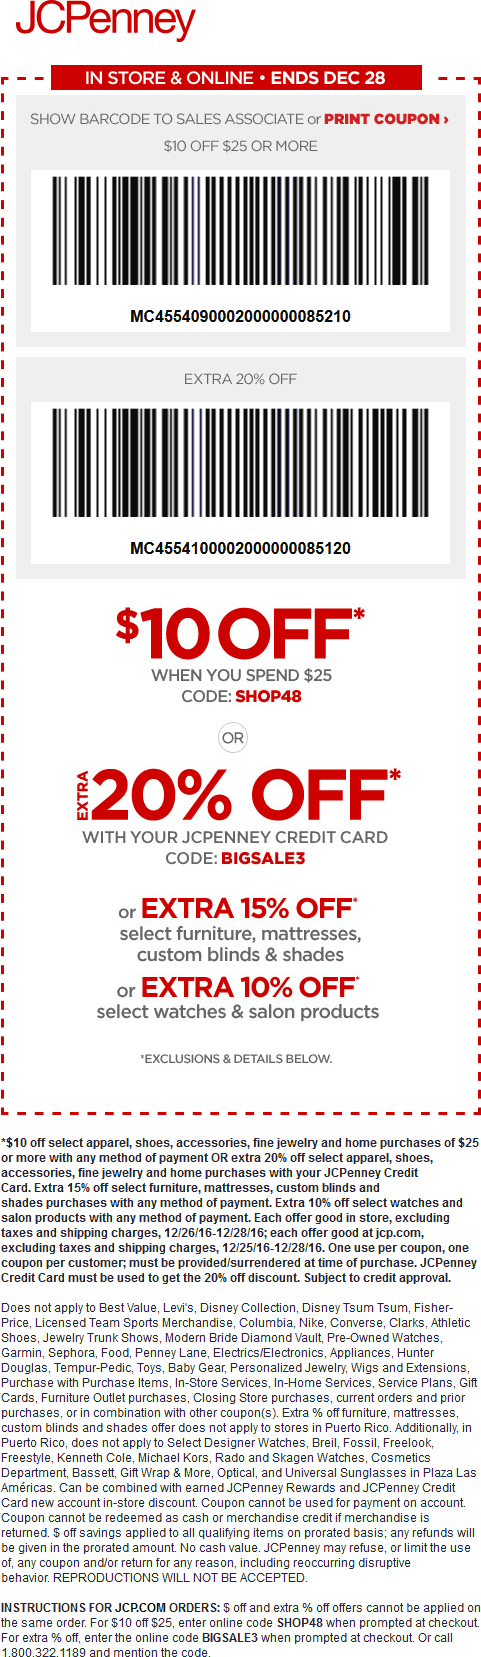 JCPenney Coupon December 2018 $10 off $25 at JCPenney, or online via promo code SHOP48